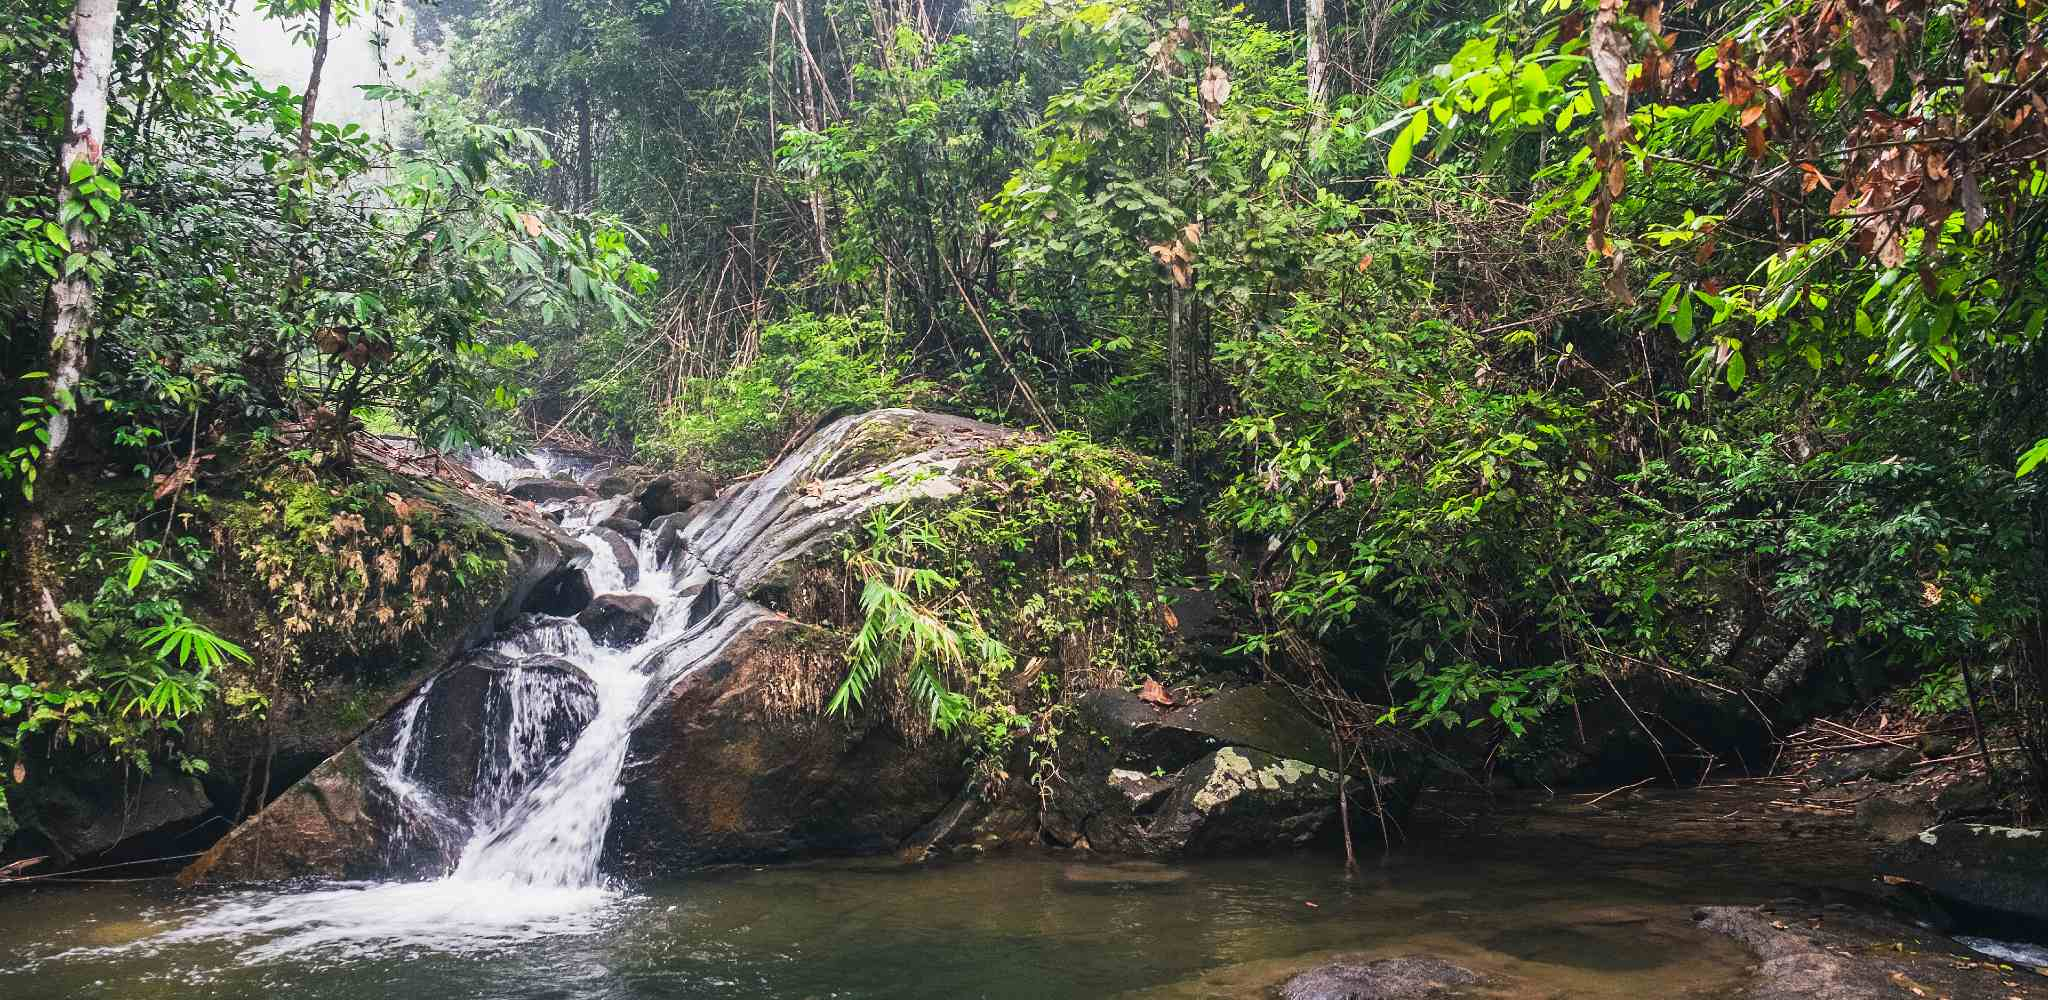 Chong Fa waterfall omgeven door jungle in het Lam Ru National Park